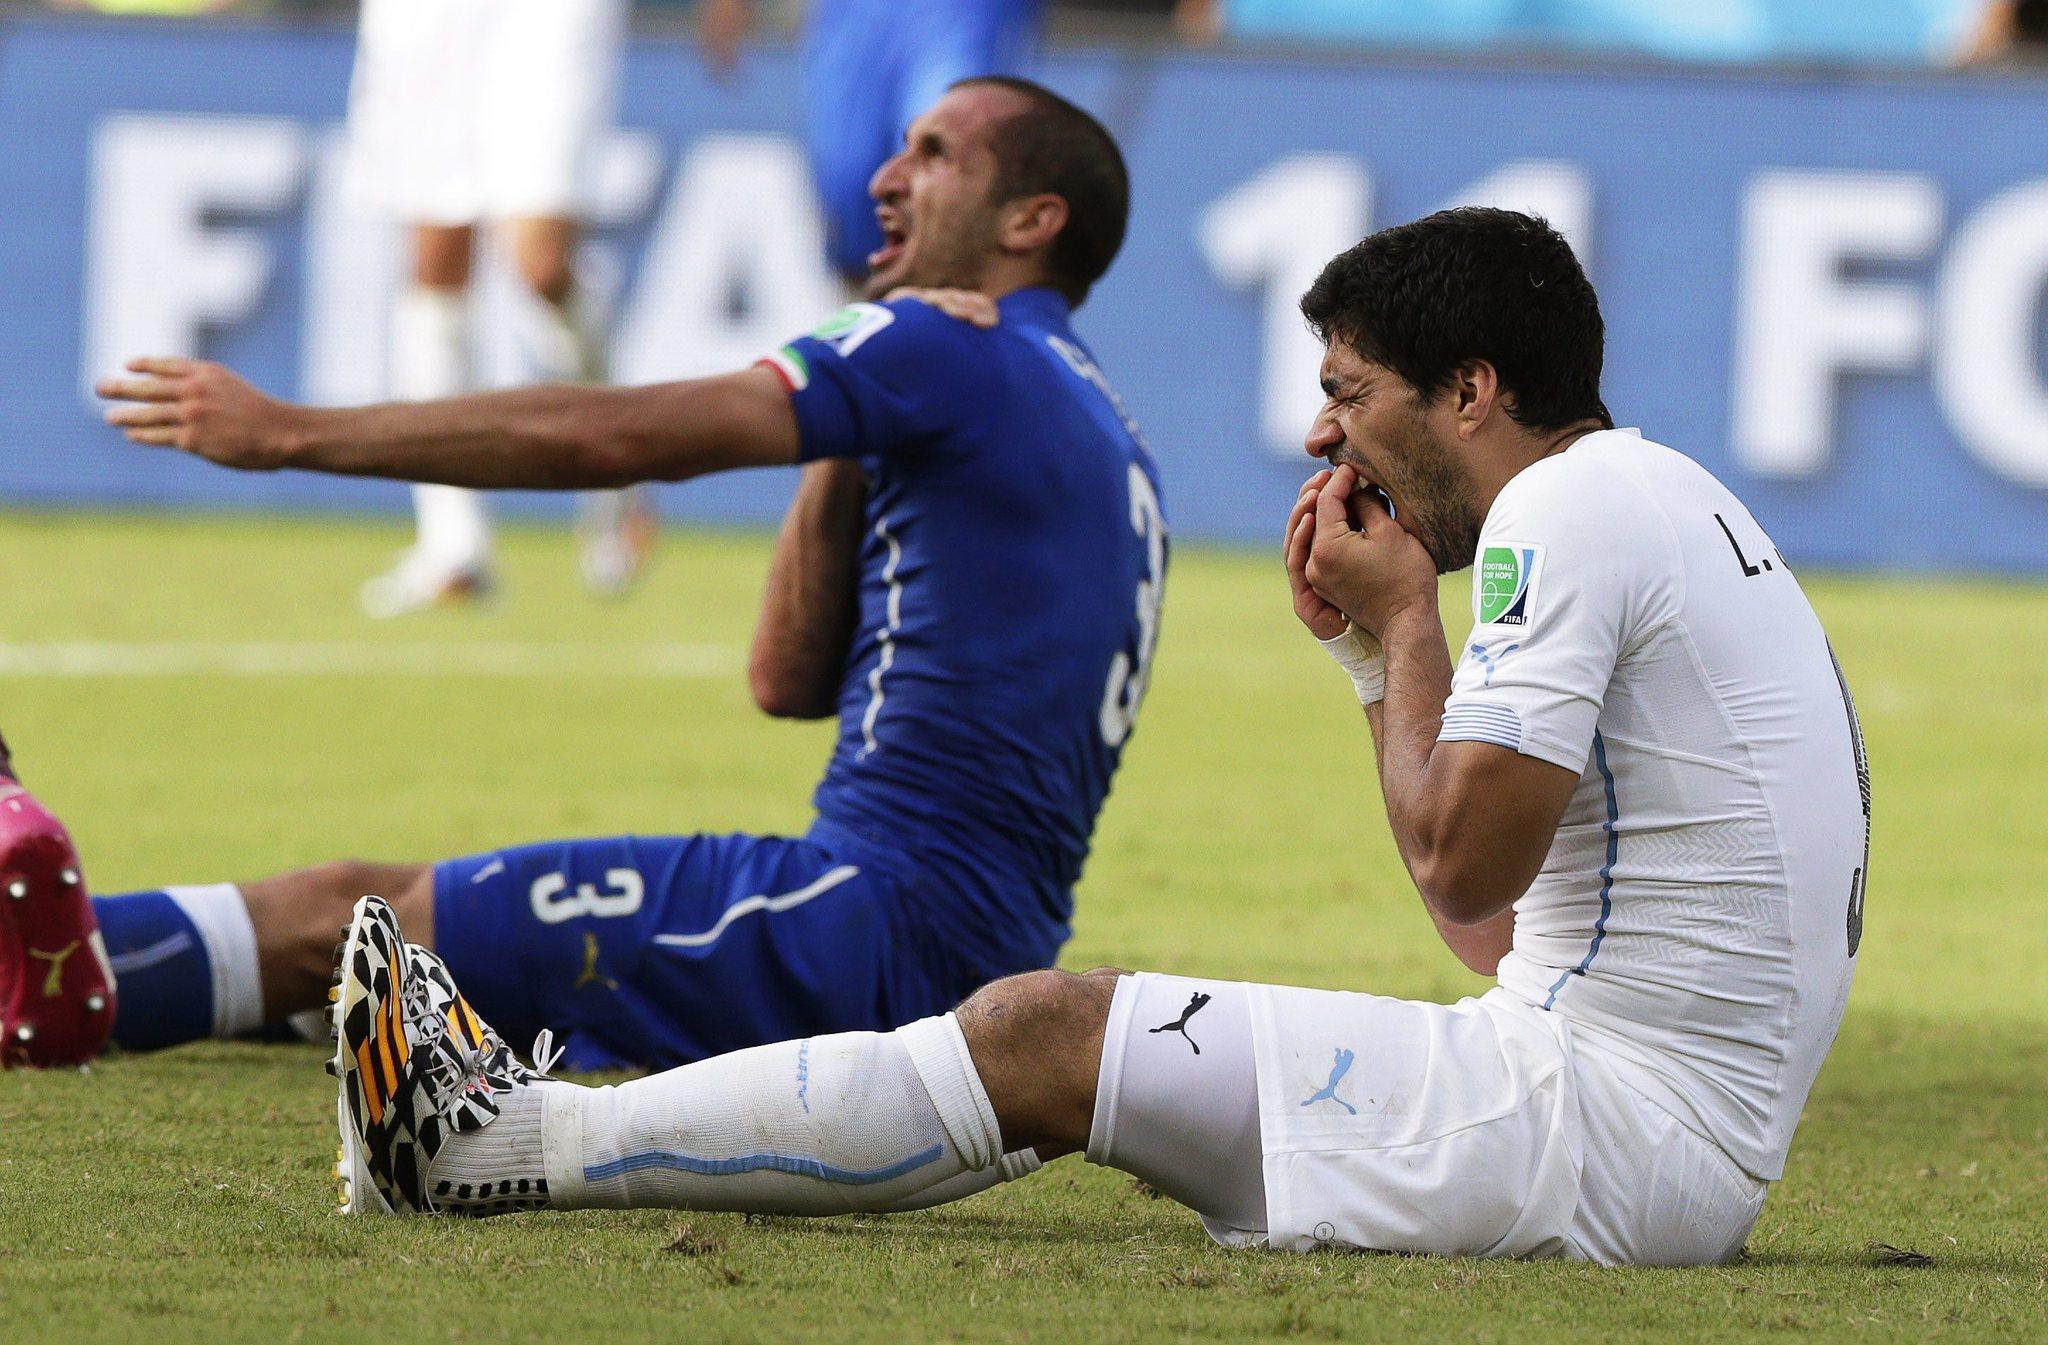 Italy's Giorgio Chiellini (left) claims he was bitten by Uruguay's Luis Suarez during their World Cup game last week.